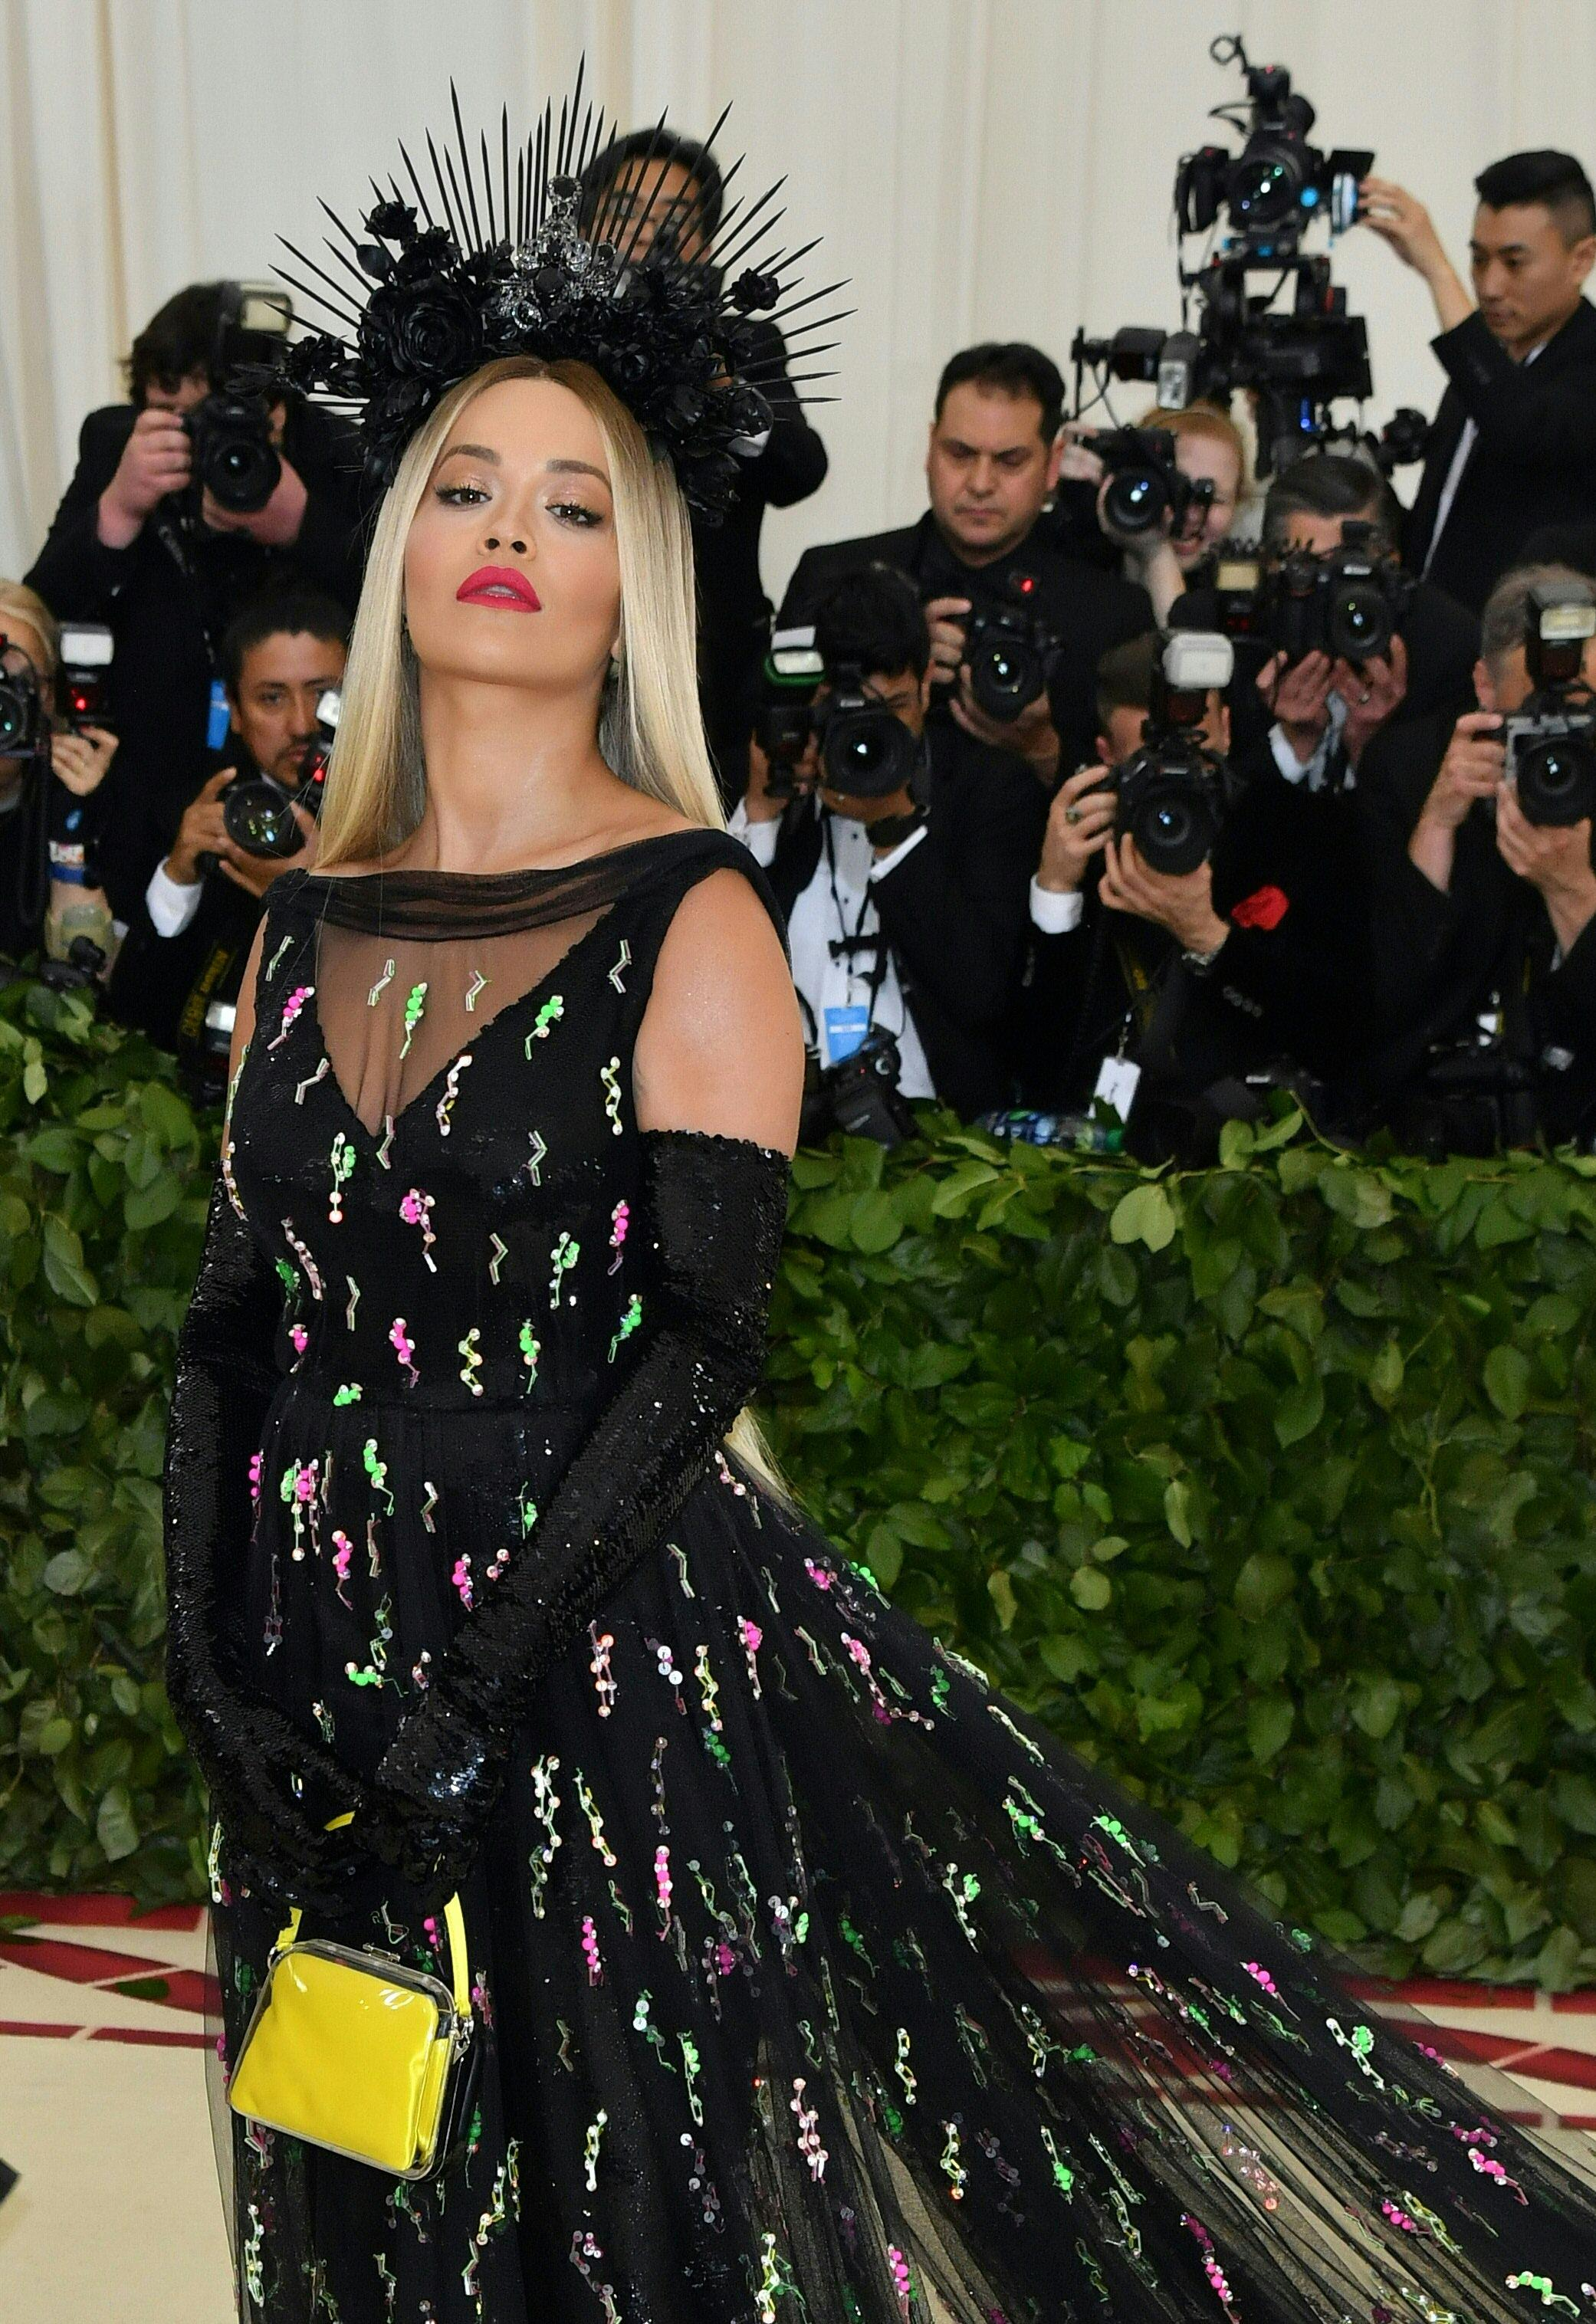 Rita Ora arrives for the 2018 Met Gala on May 7, 2018, at the Metropolitan Museum of Art in New York. - The Gala raises money for the Metropolitan Museum of Arts Costume Institute. The Gala's 2018 theme is Heavenly Bodies: Fashion and the Catholic Imagination. (Photo by Angela WEISS / AFP)        (Photo credit should read ANGELA WEISS/AFP/Getty Images)